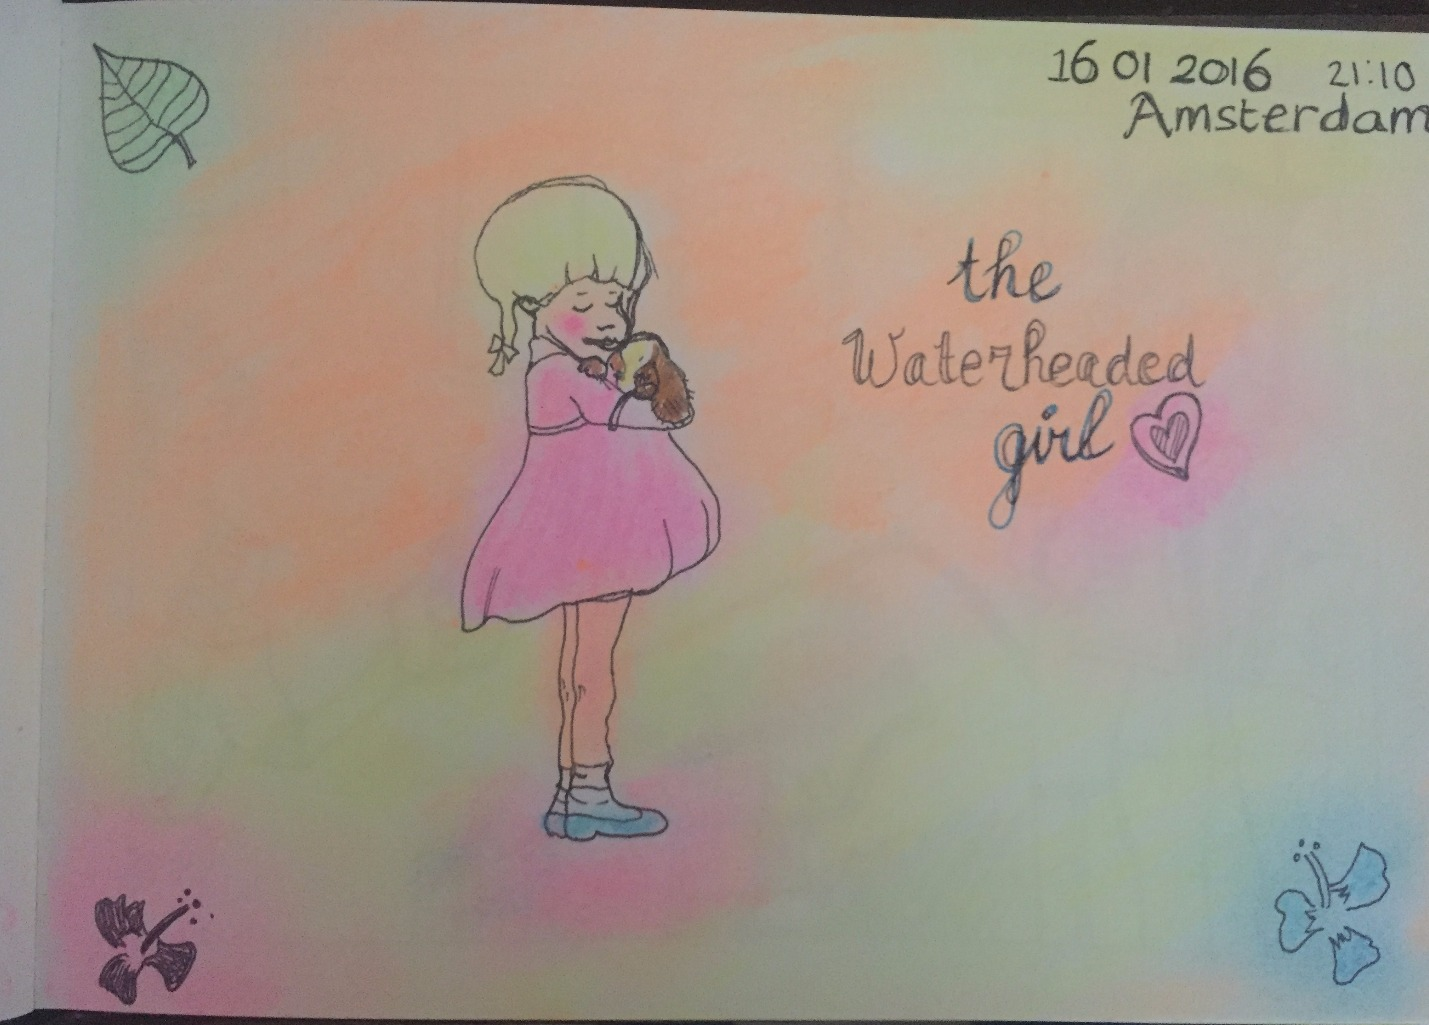 The waterheaded girl